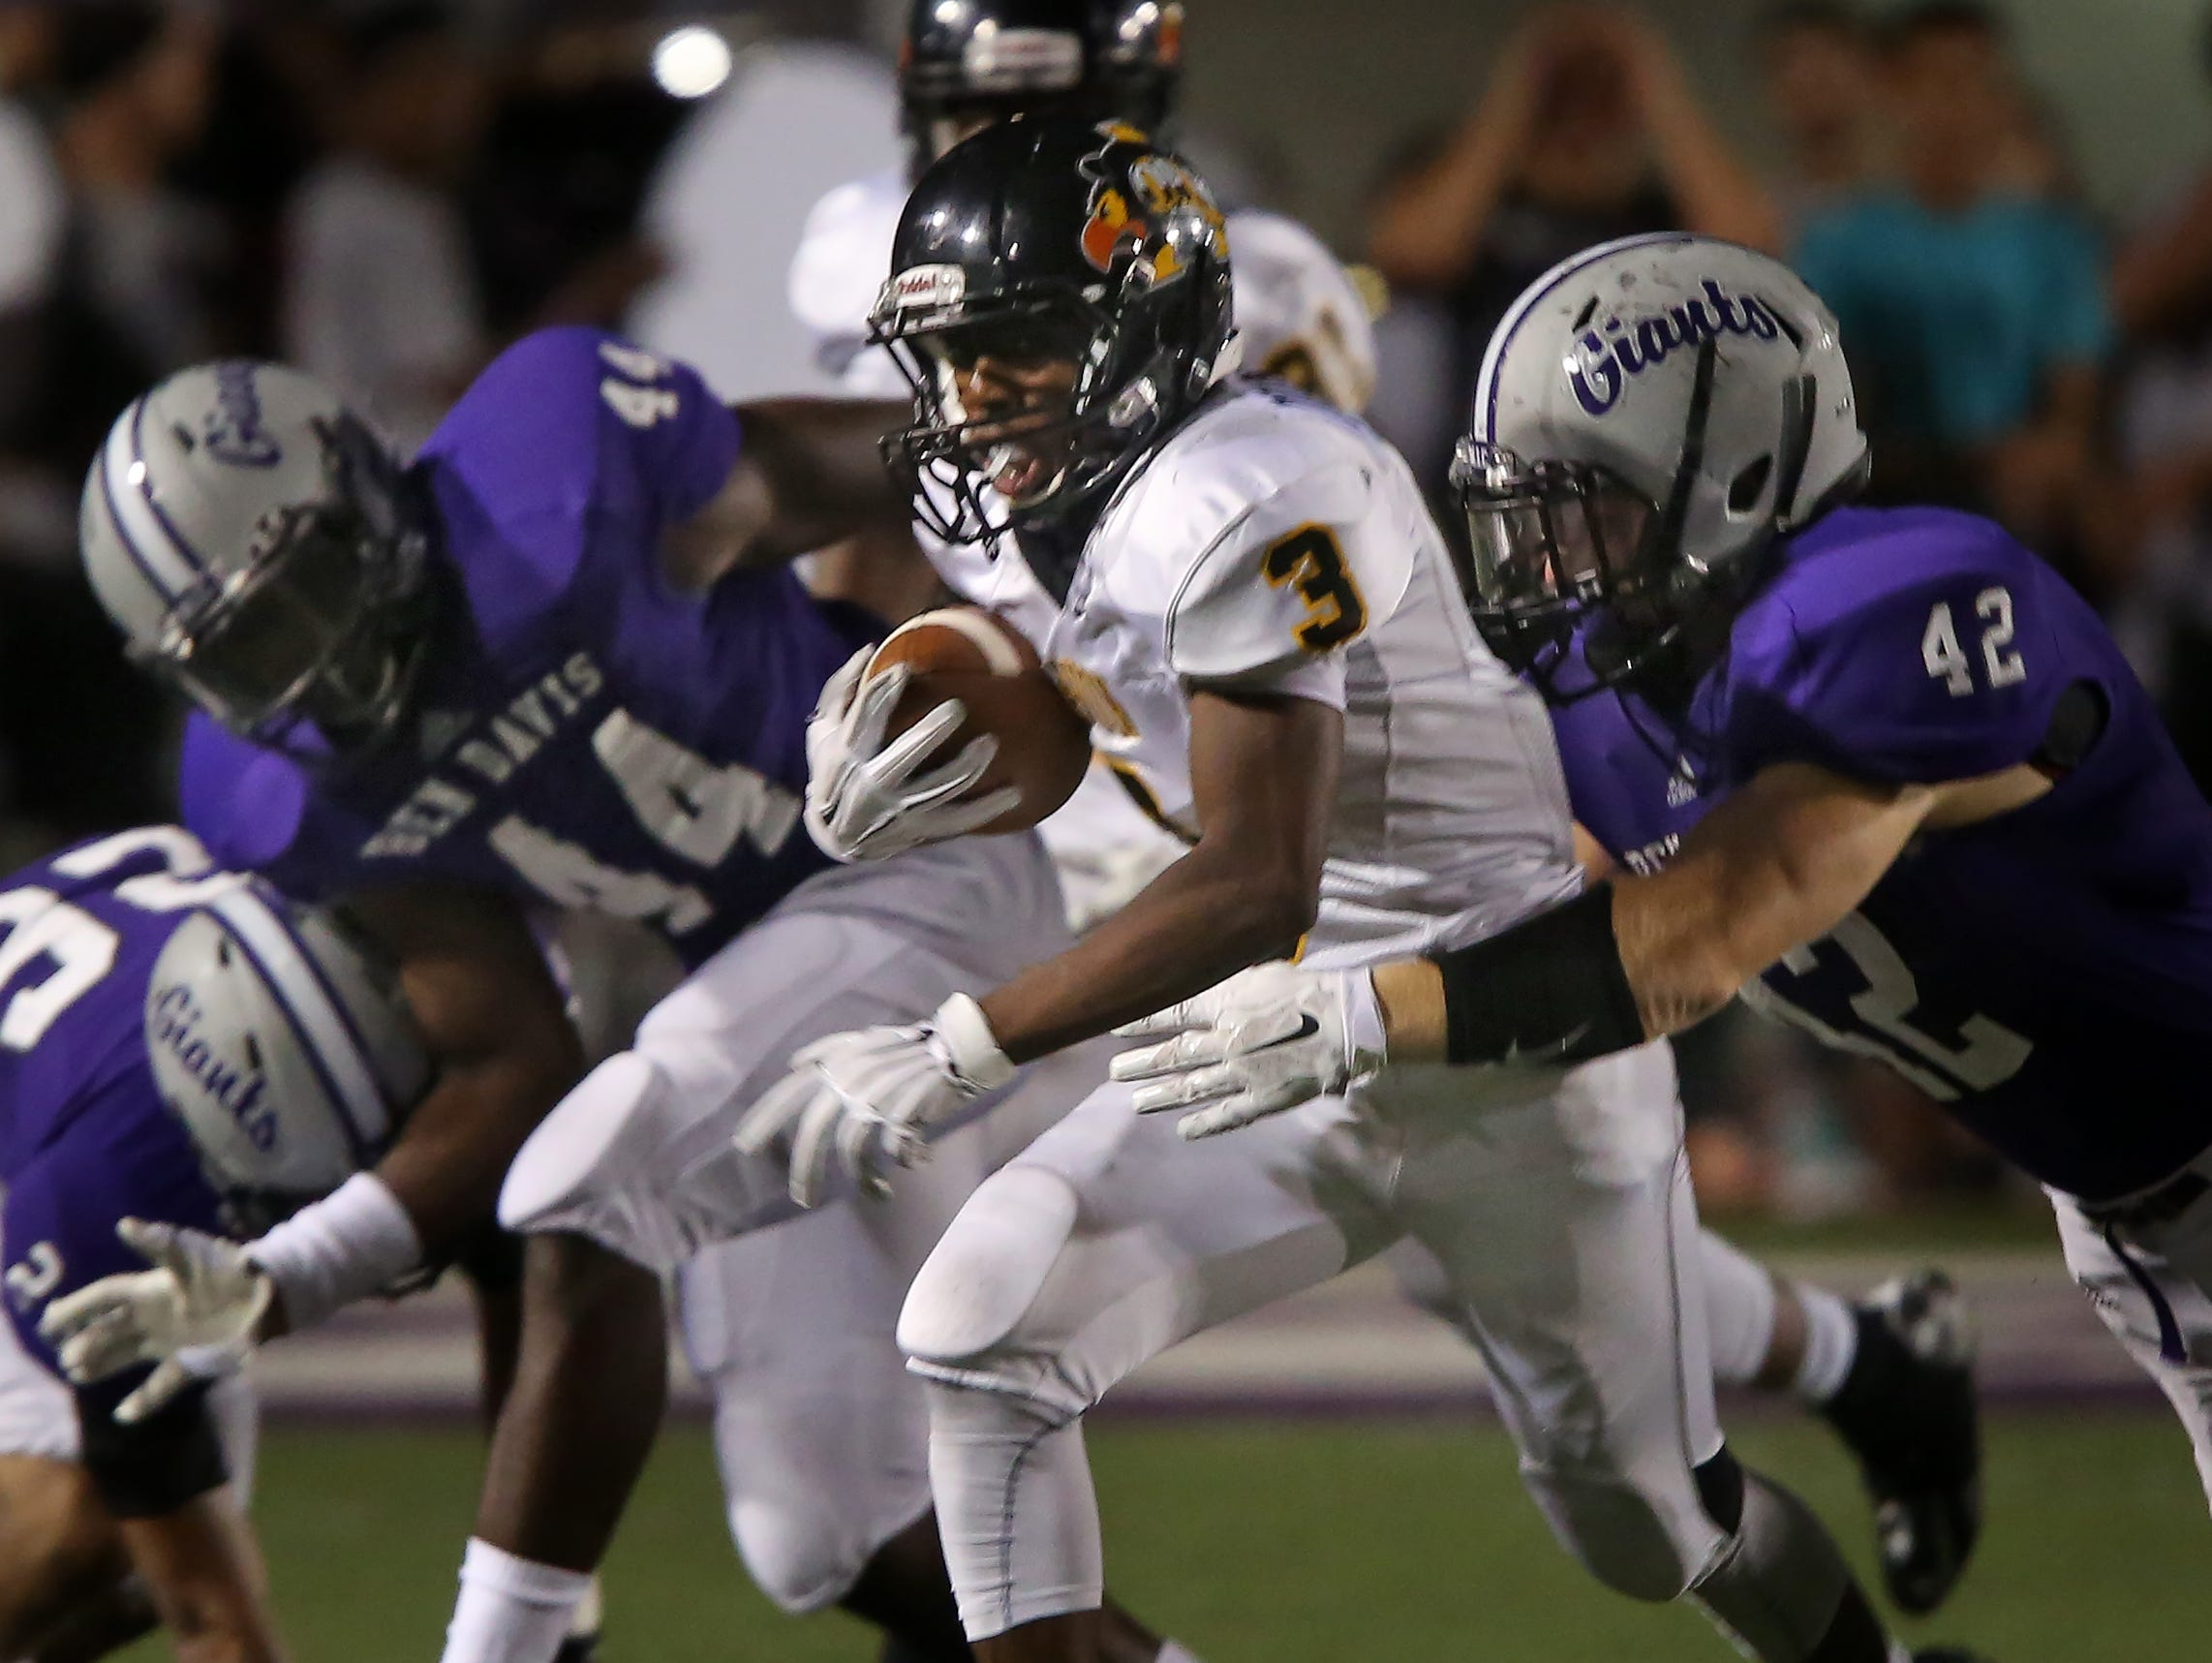 Avon and Ben Davis combined for 91 points in their Week 2 matchup. They meet again, this time for a sectional title.